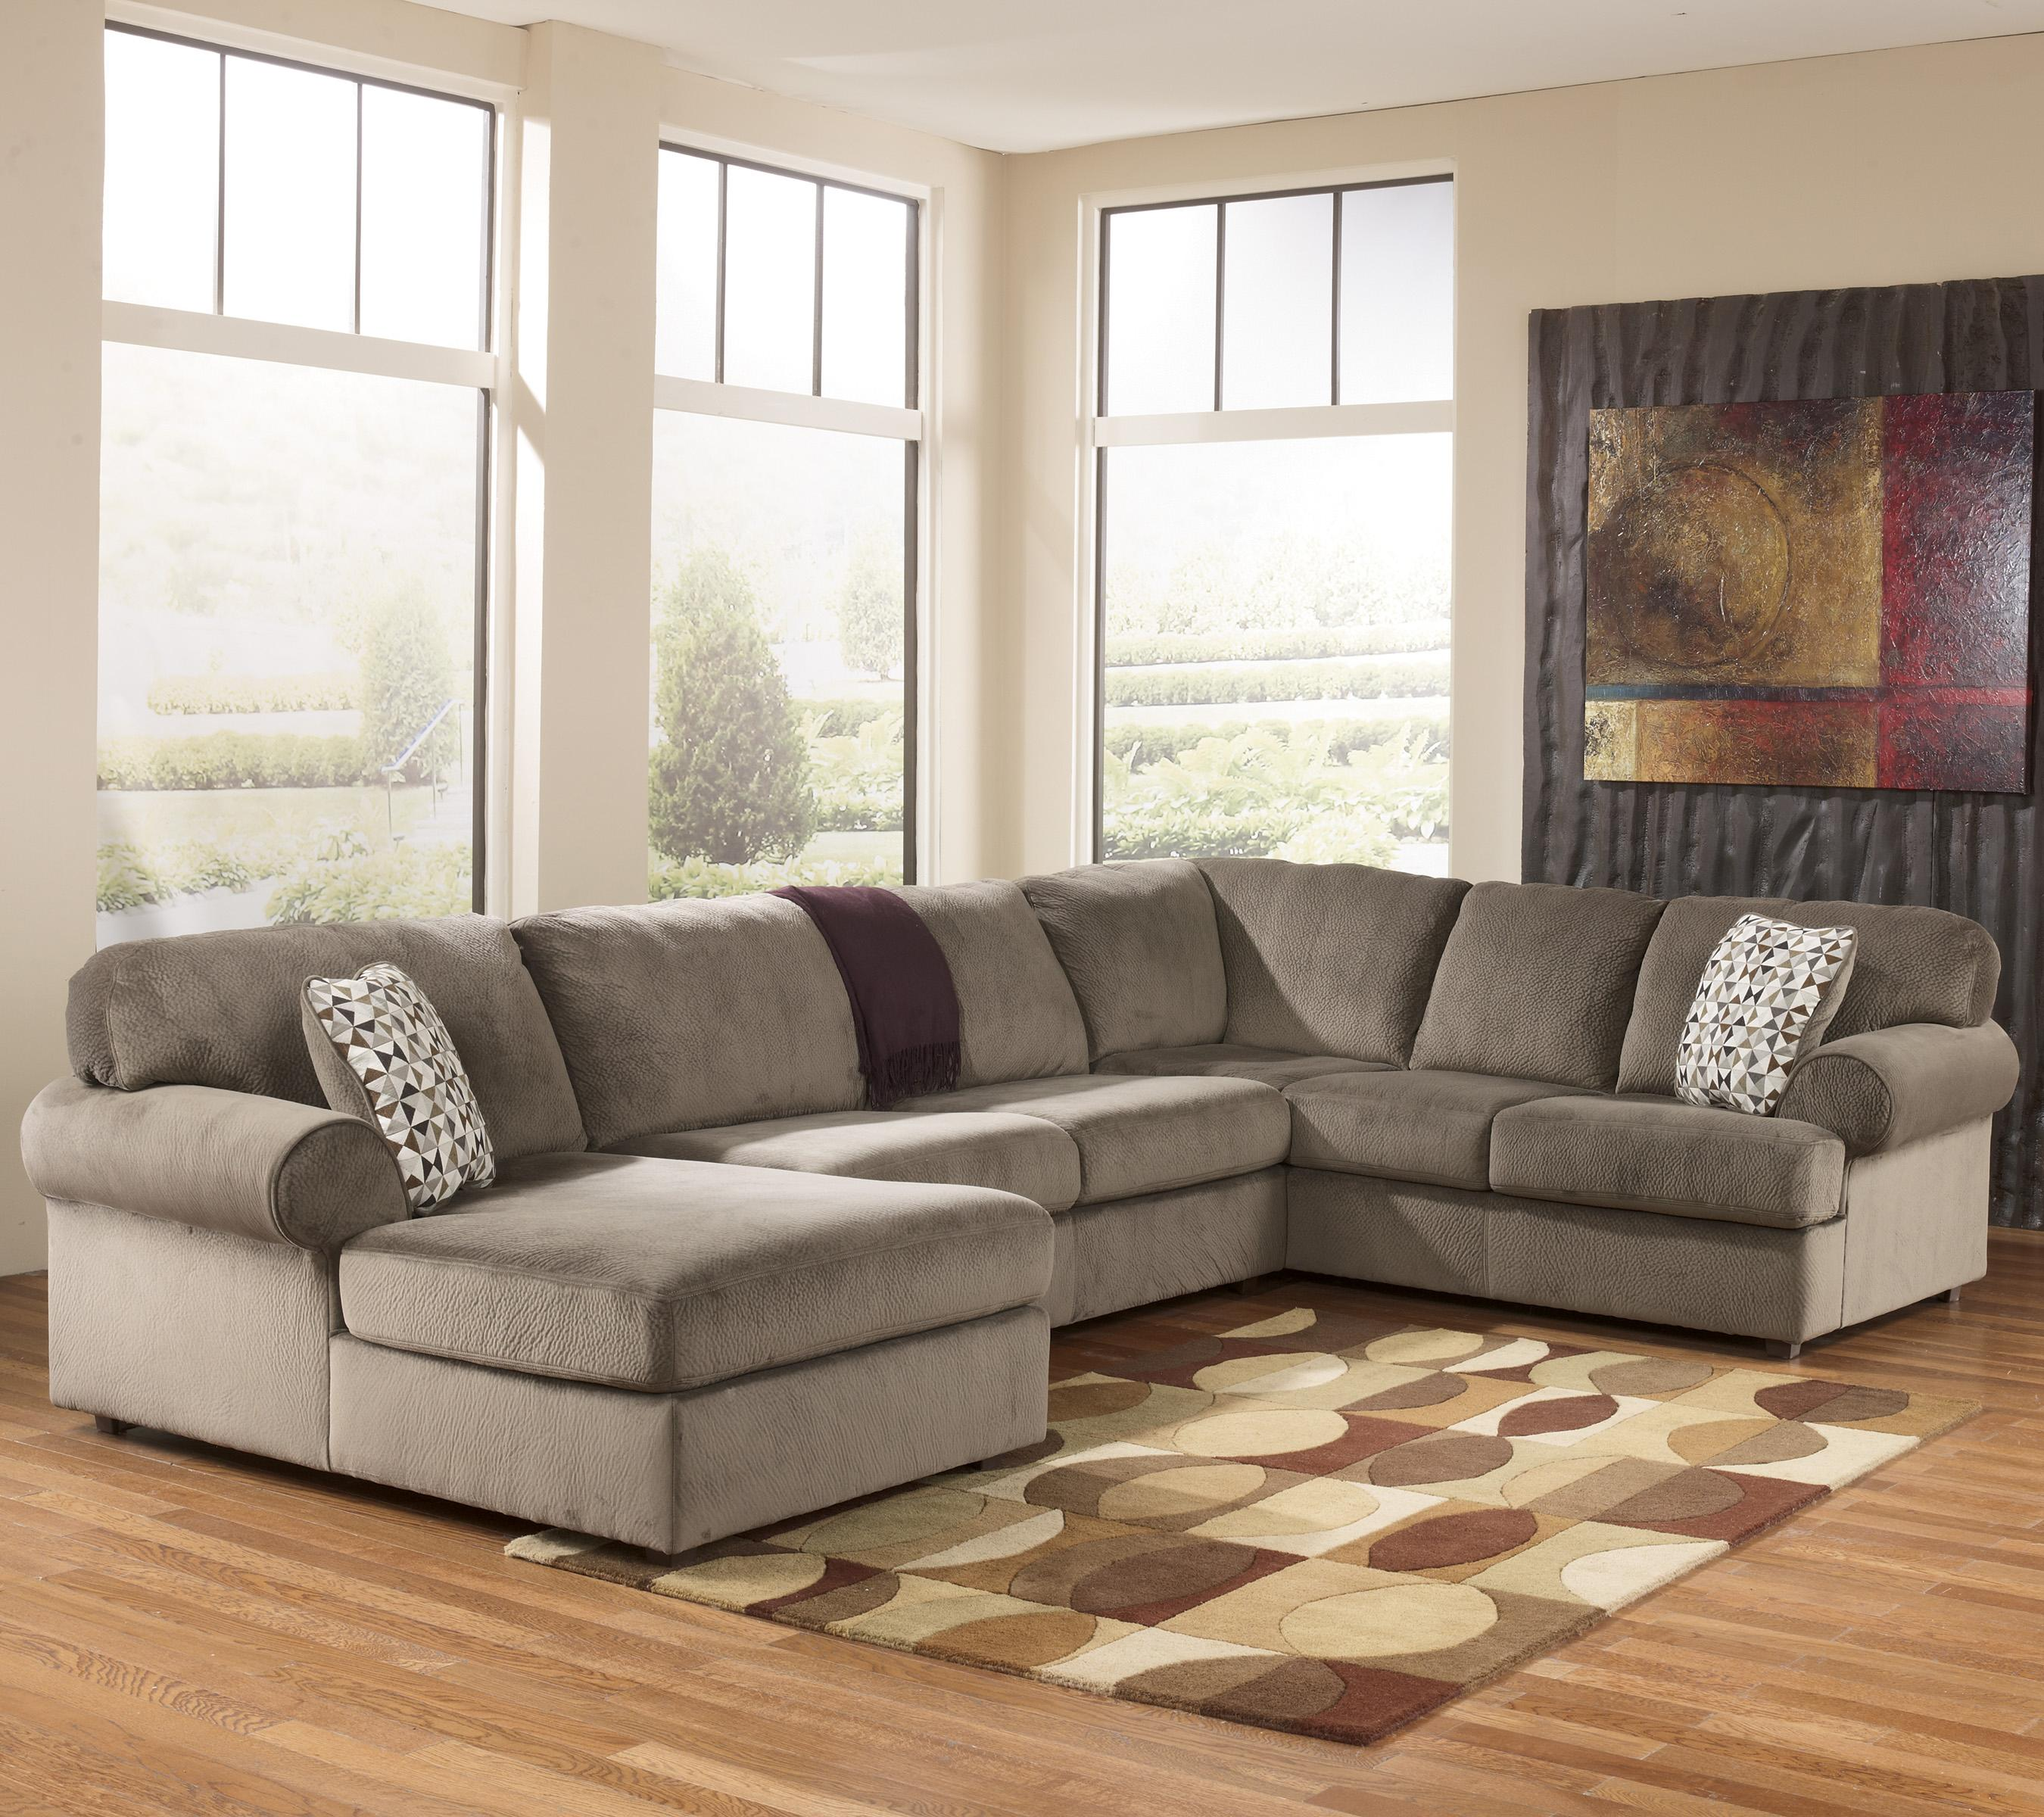 Ashley Homestore: Casual Sectional Sofa With Left Chaise By Signature Design